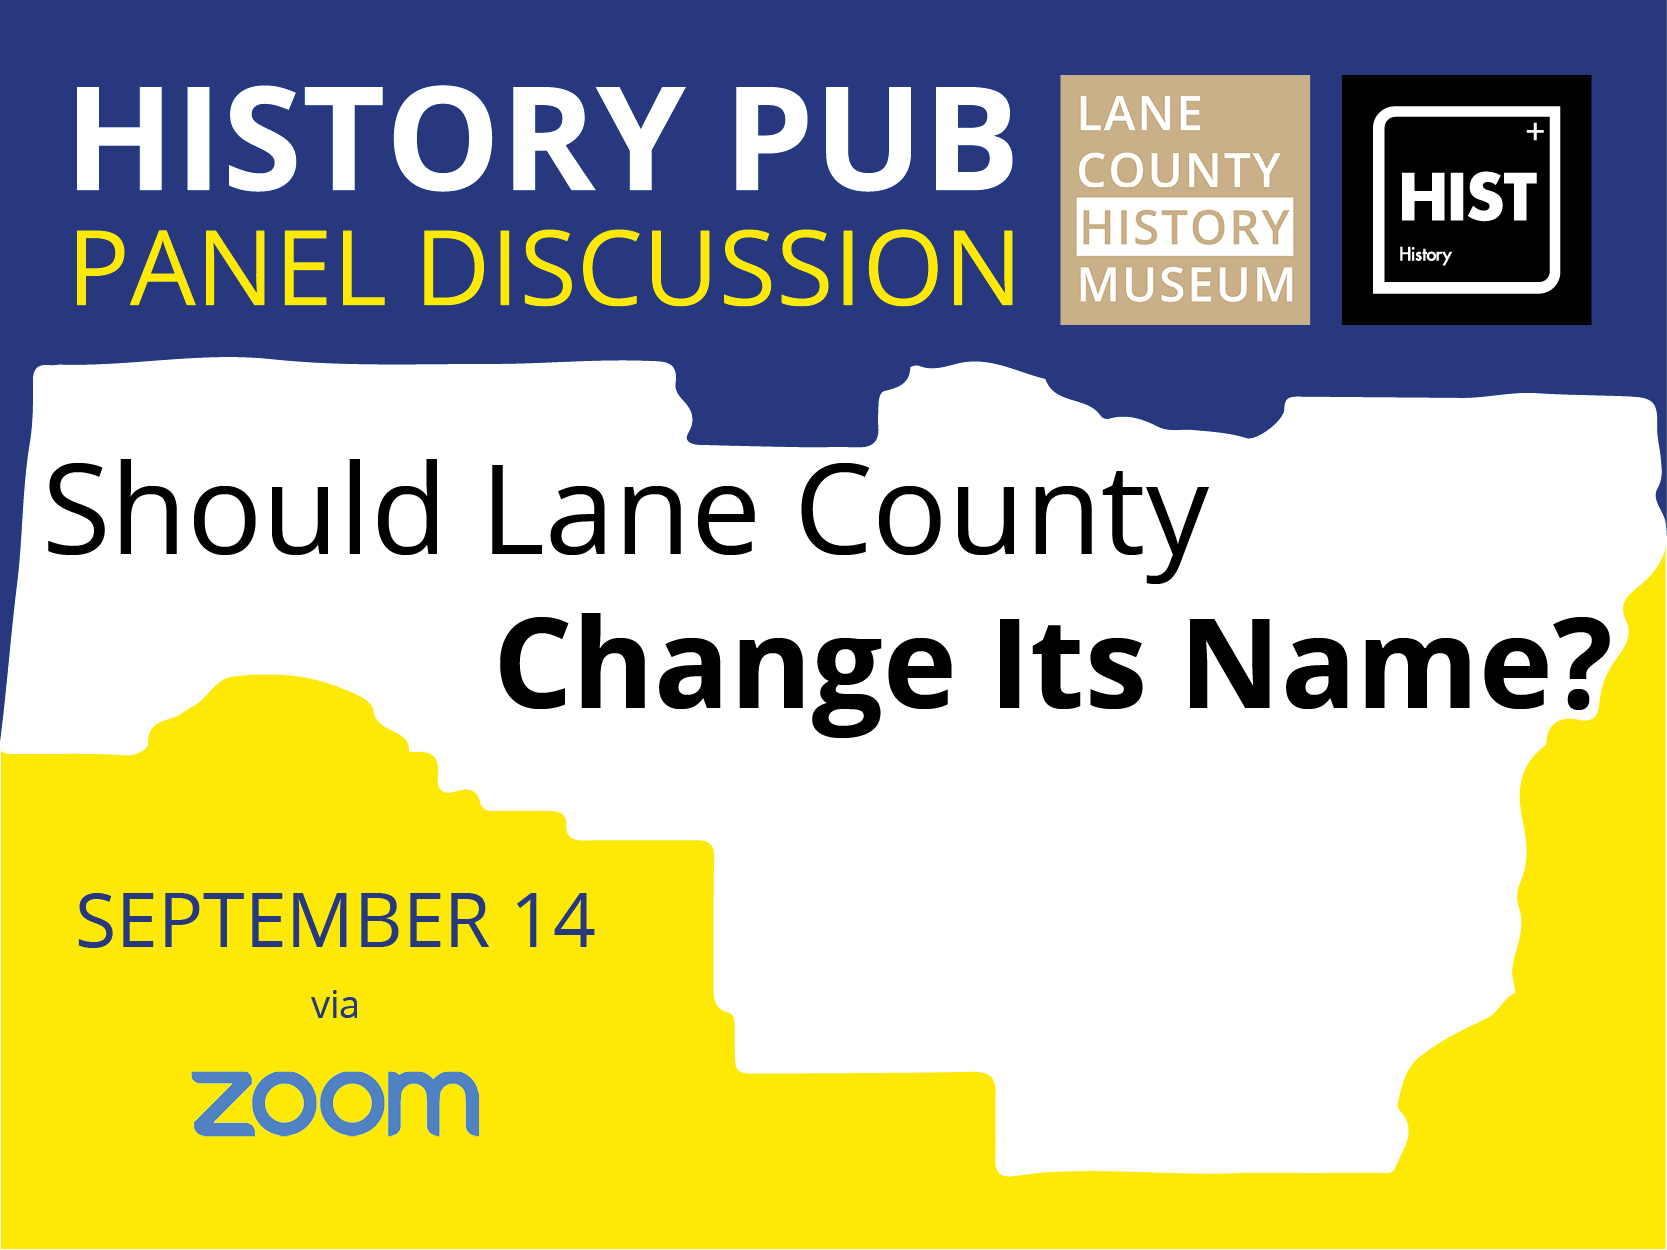 Rename Lane County Panel discussion